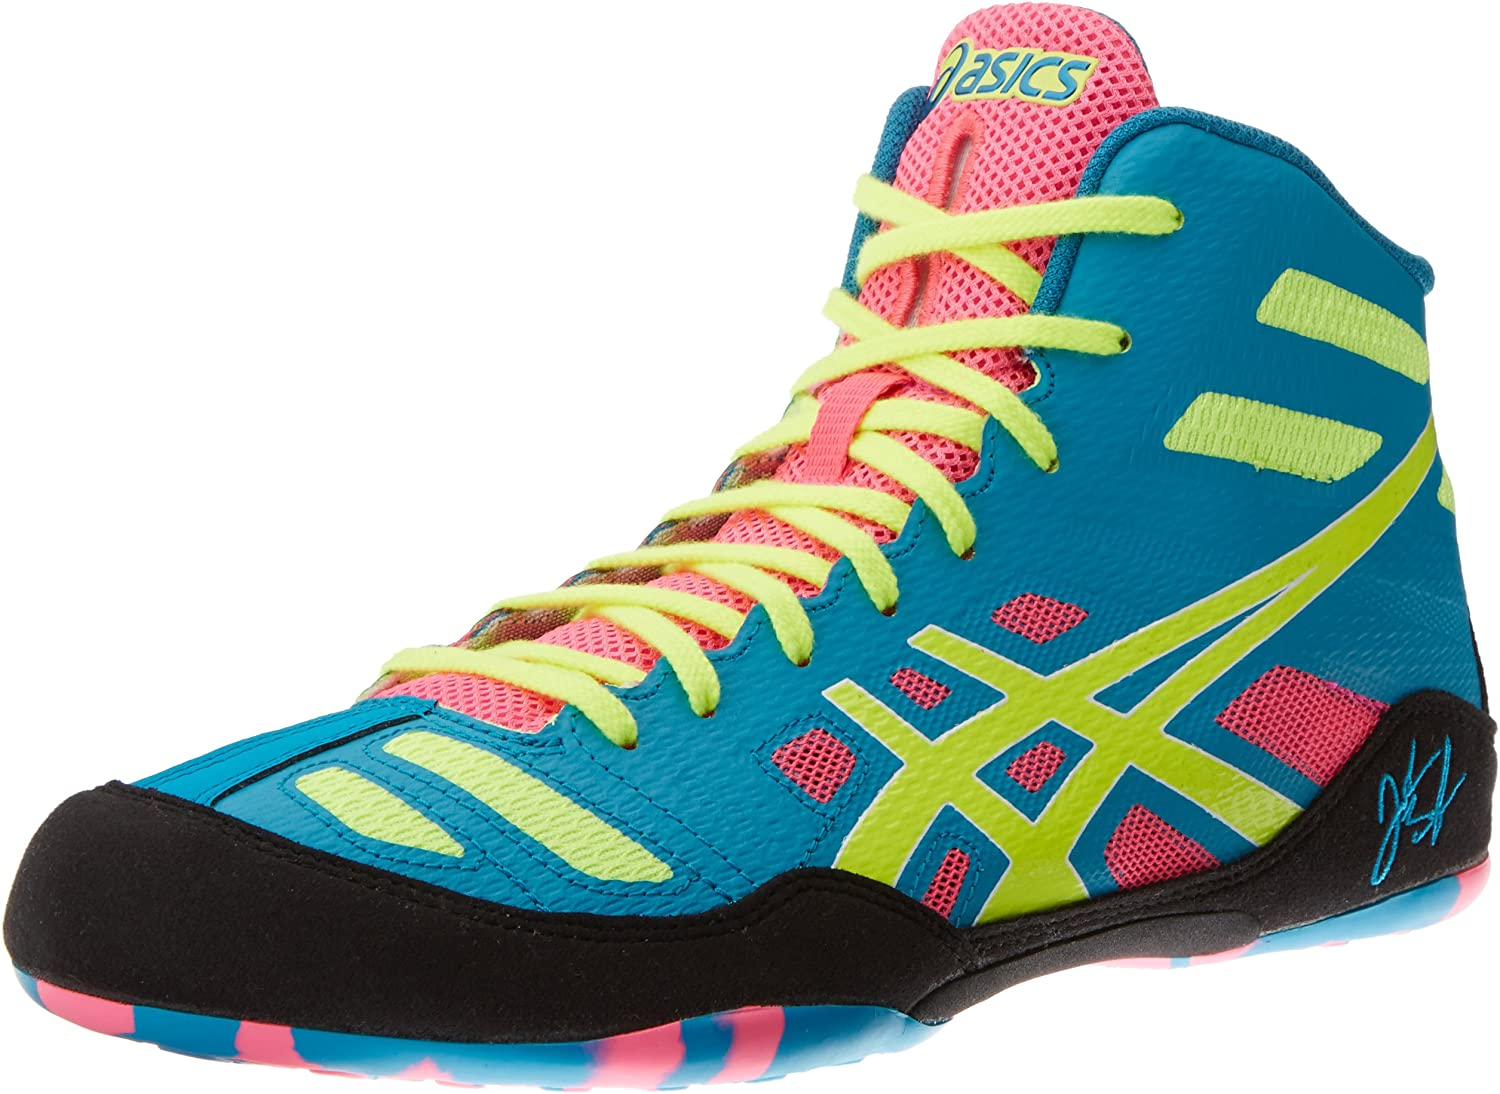 2b51e069c829c ASICS JB Elite shoes Men's Wrestling nvmufo806-Sporting goods